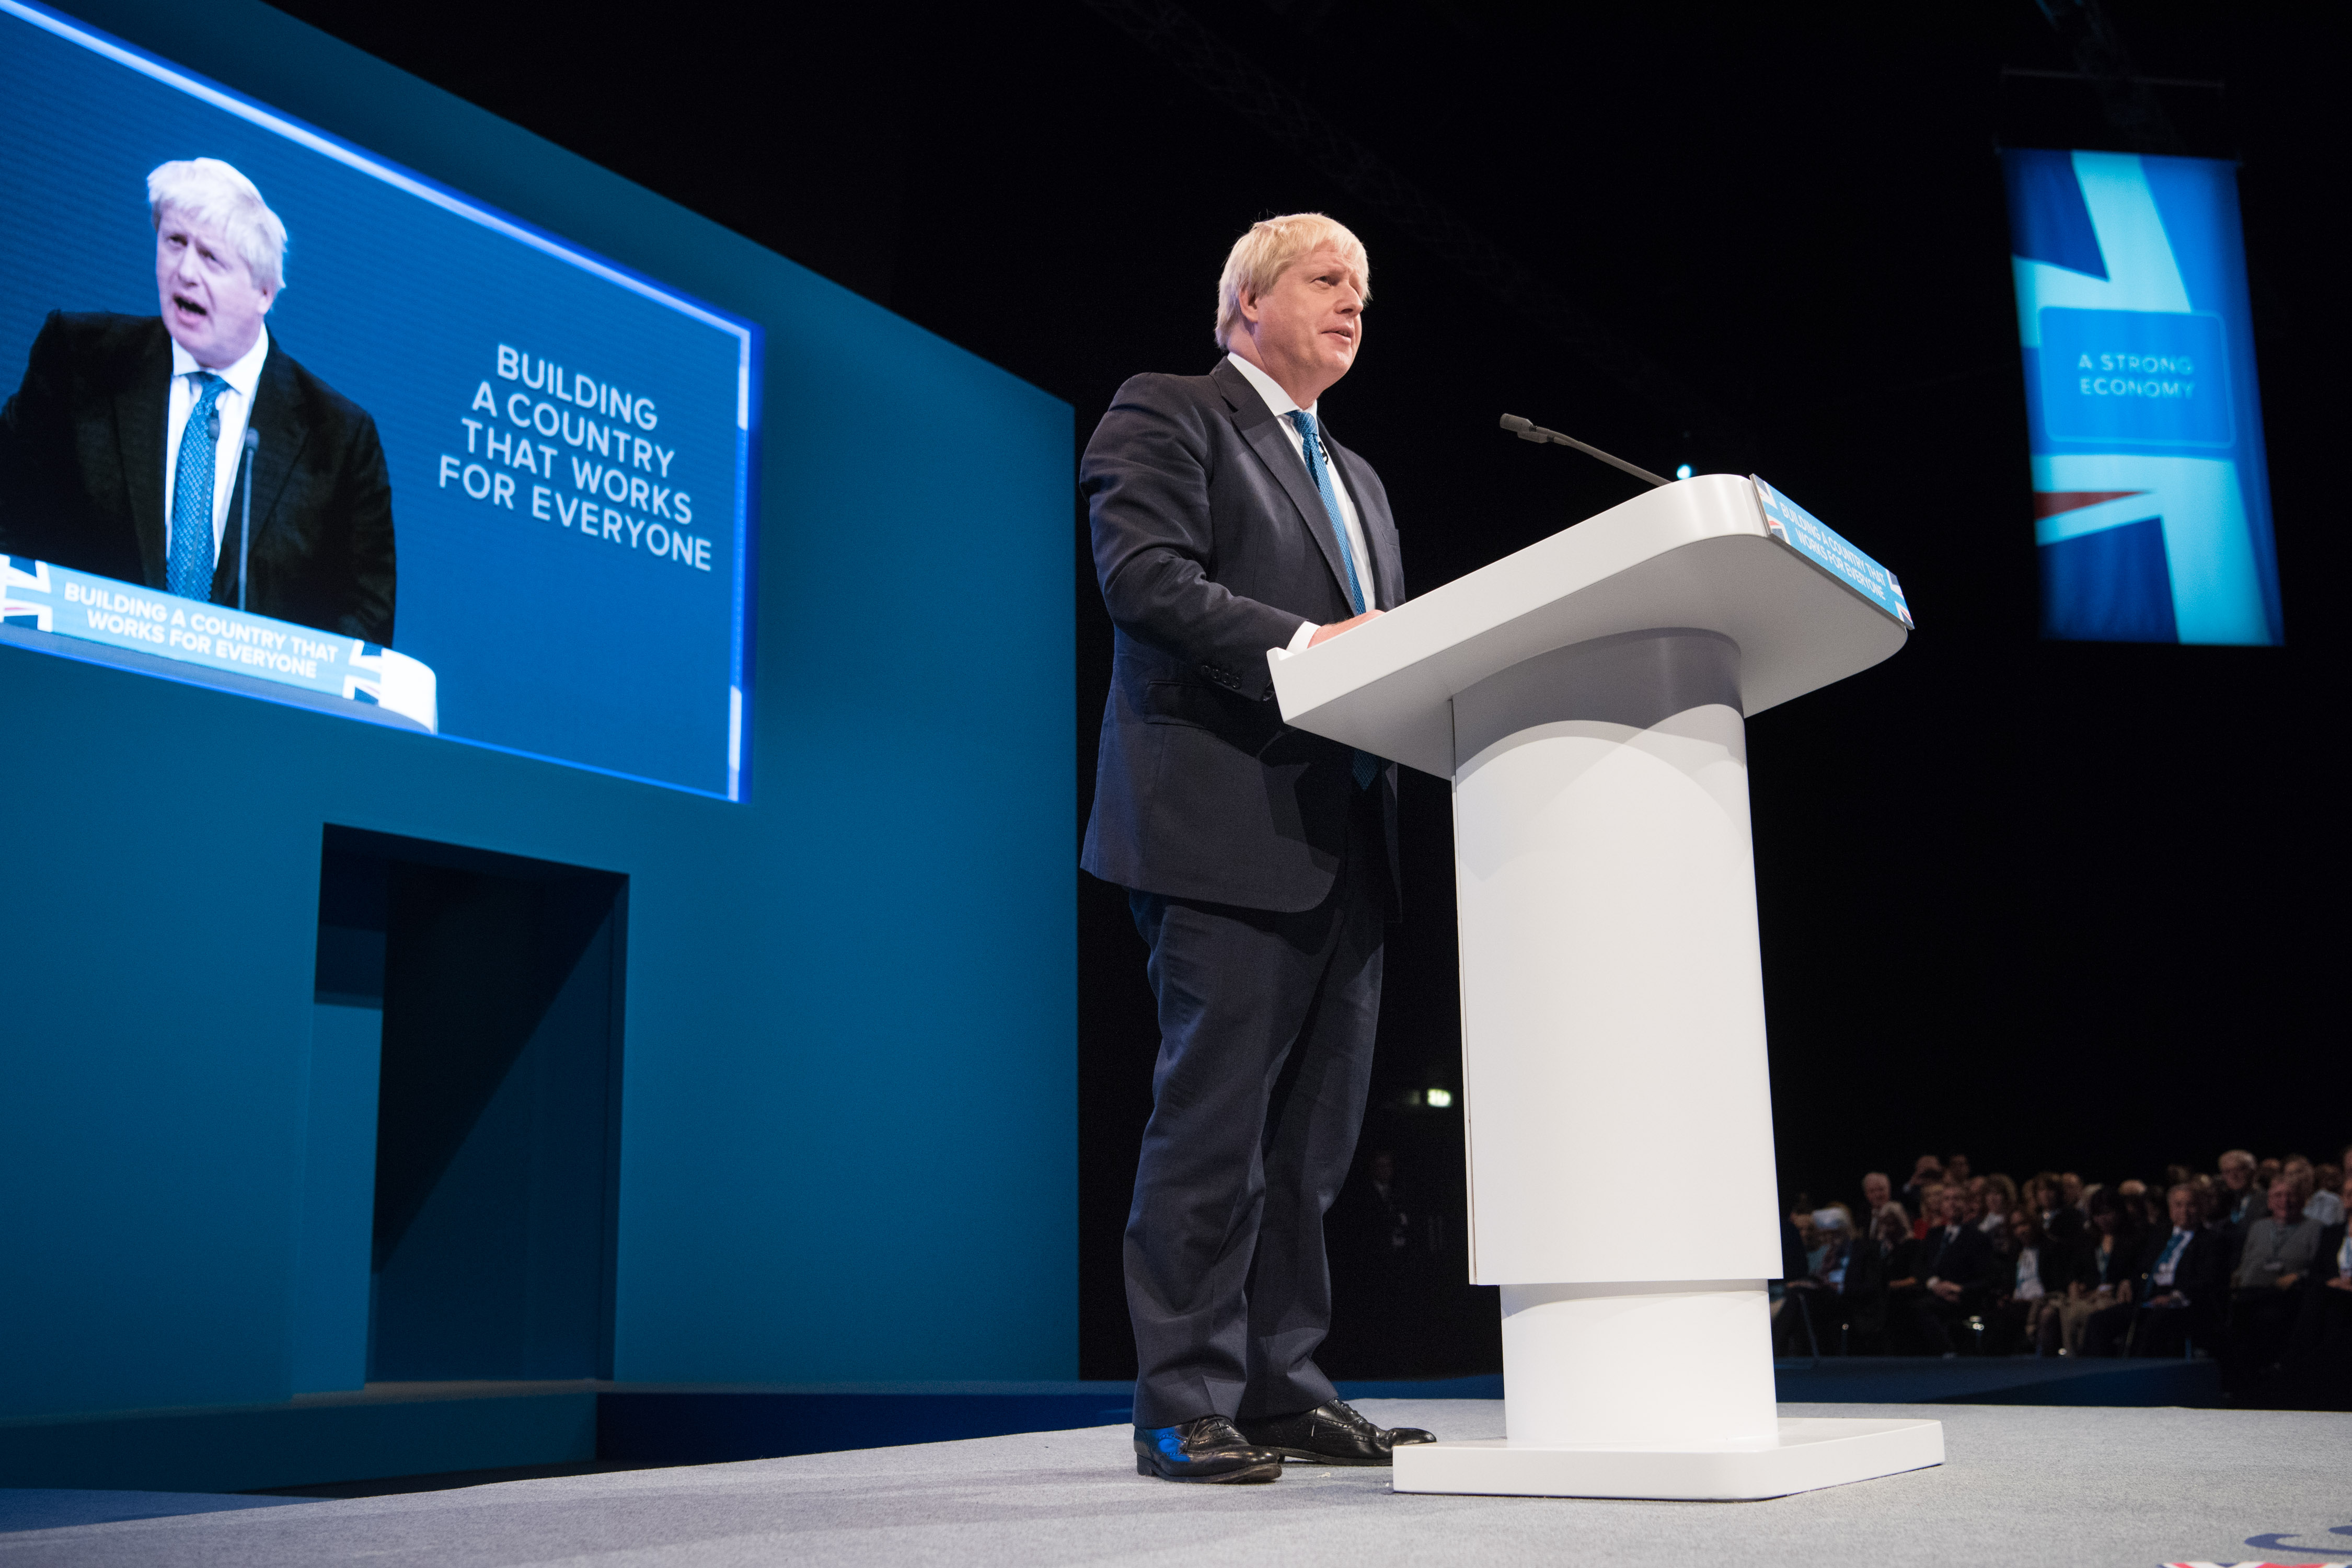 Foreign Secretary Boris Johnson makes a speech during the Conservative Party Conference, at the Manchester Central Convention Complex in Manchester. Picture date: 3 October, 2017. Photo credit should read: Matt Crossick/ EMPICS Entertainment.